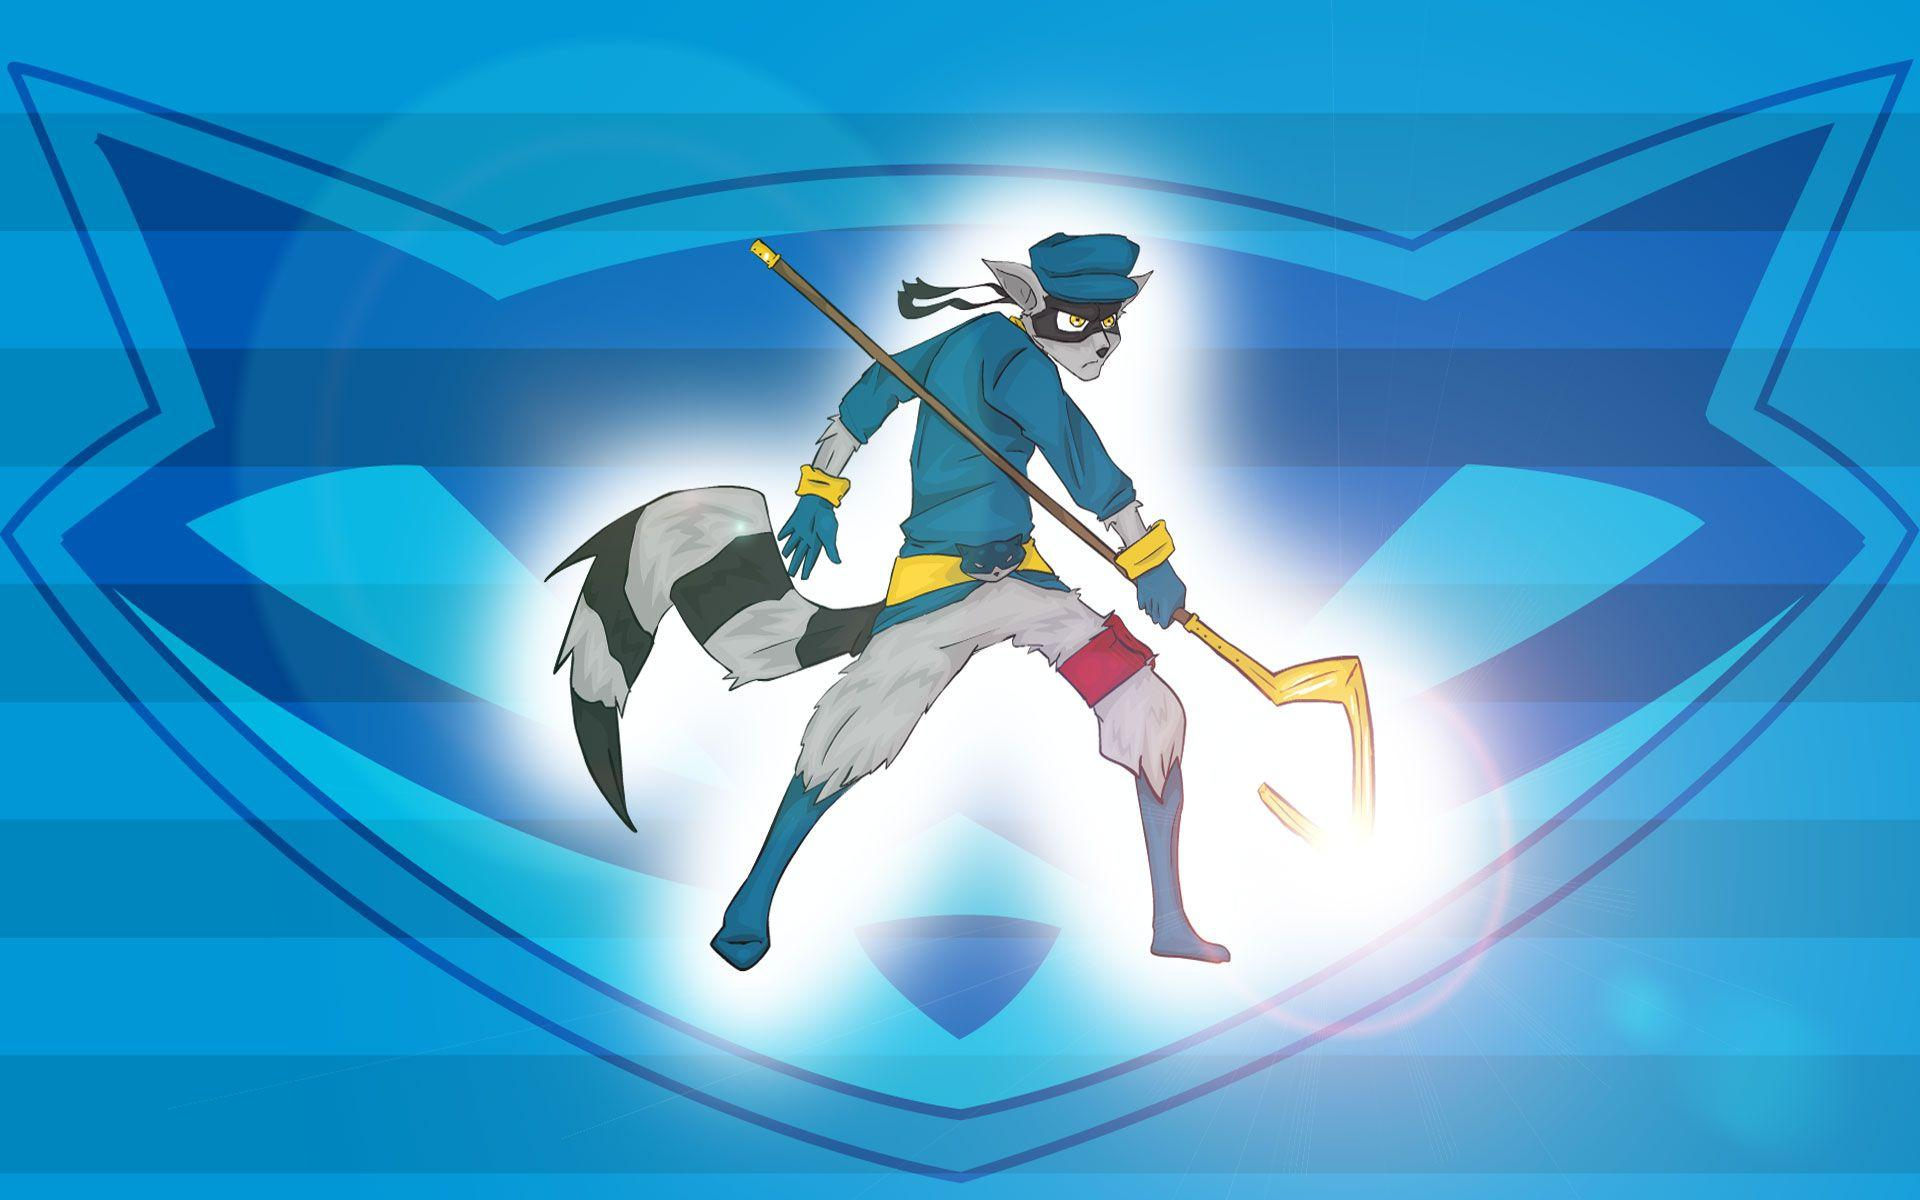 Sly Cooper Wallpapers 1920x1200